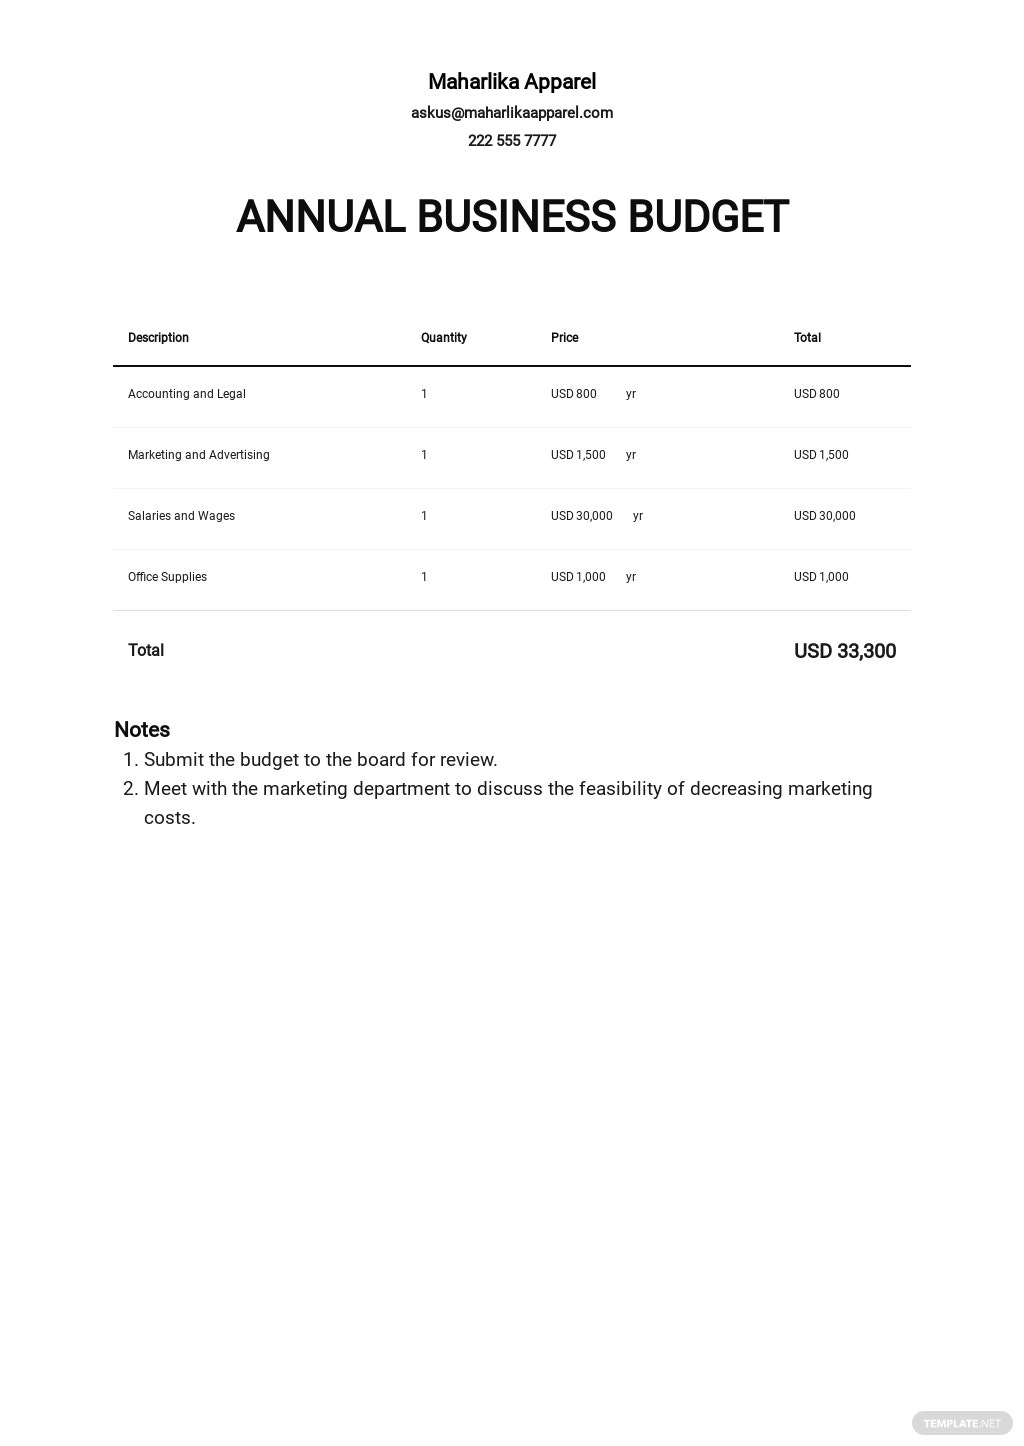 Annual Business Budget Template.jpe